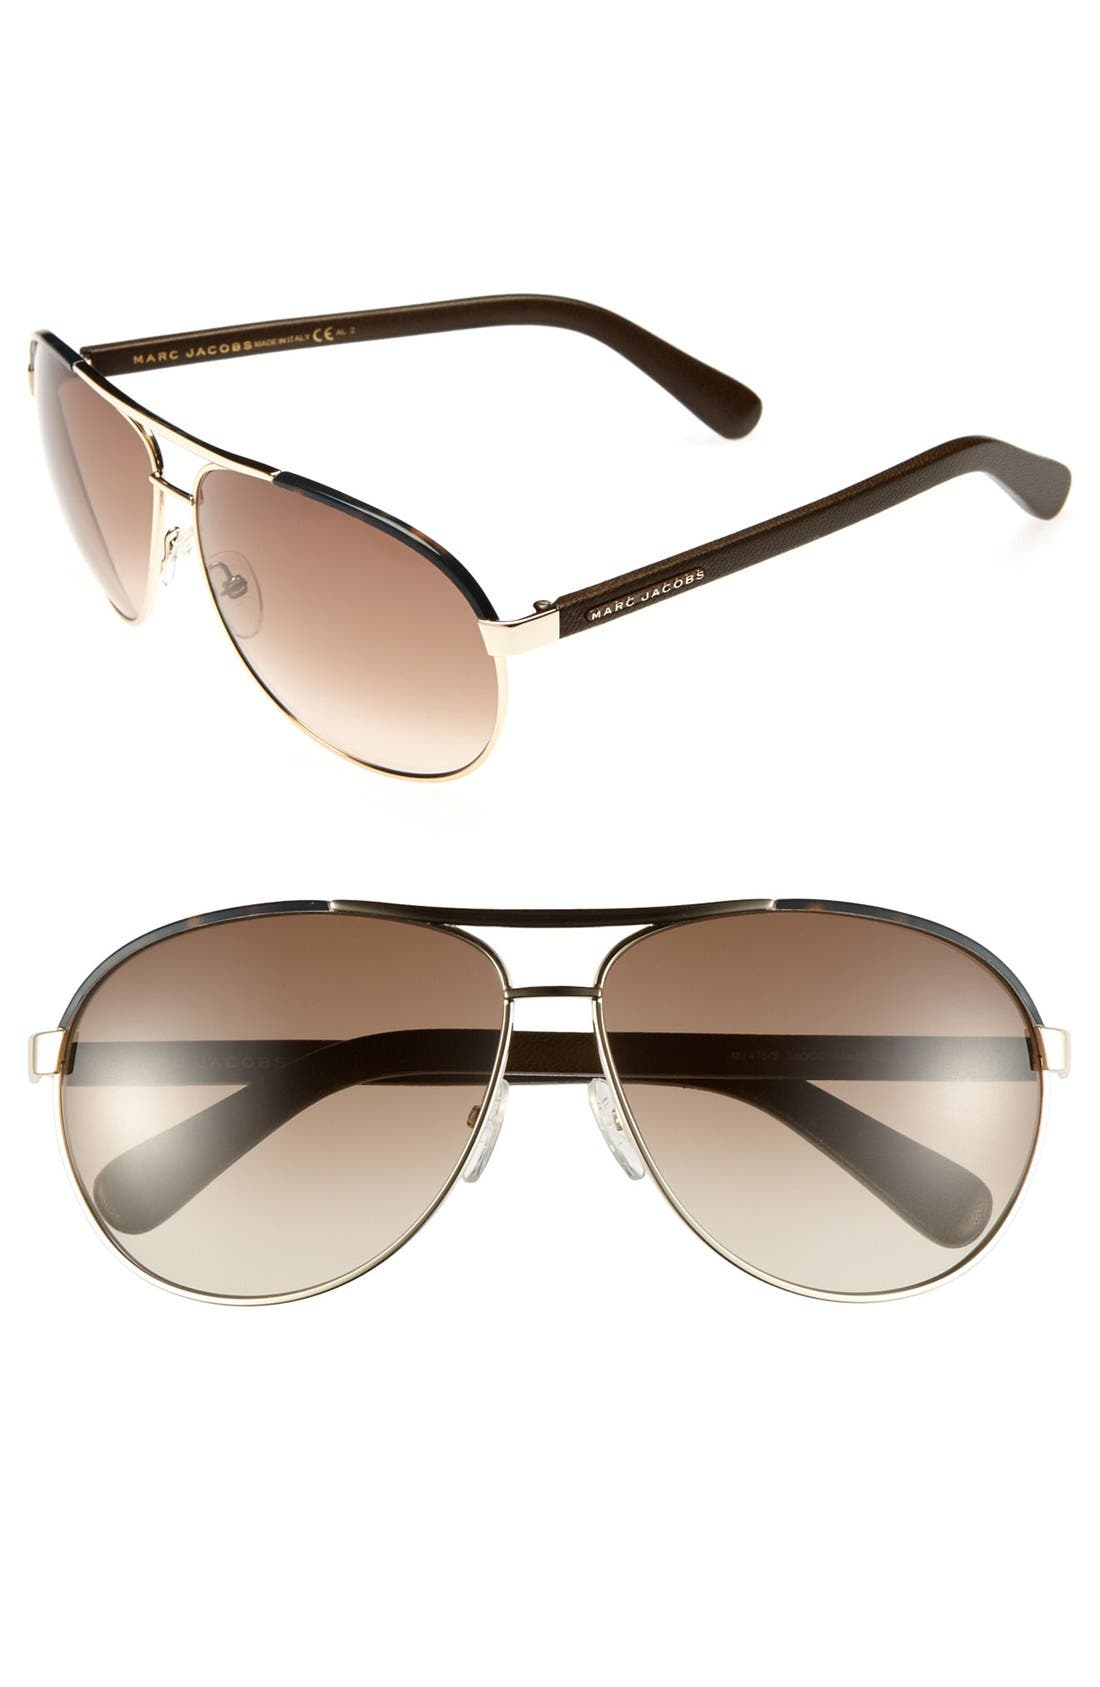 Main Image - MARC JACOBS 63mm Aviator Sunglasses